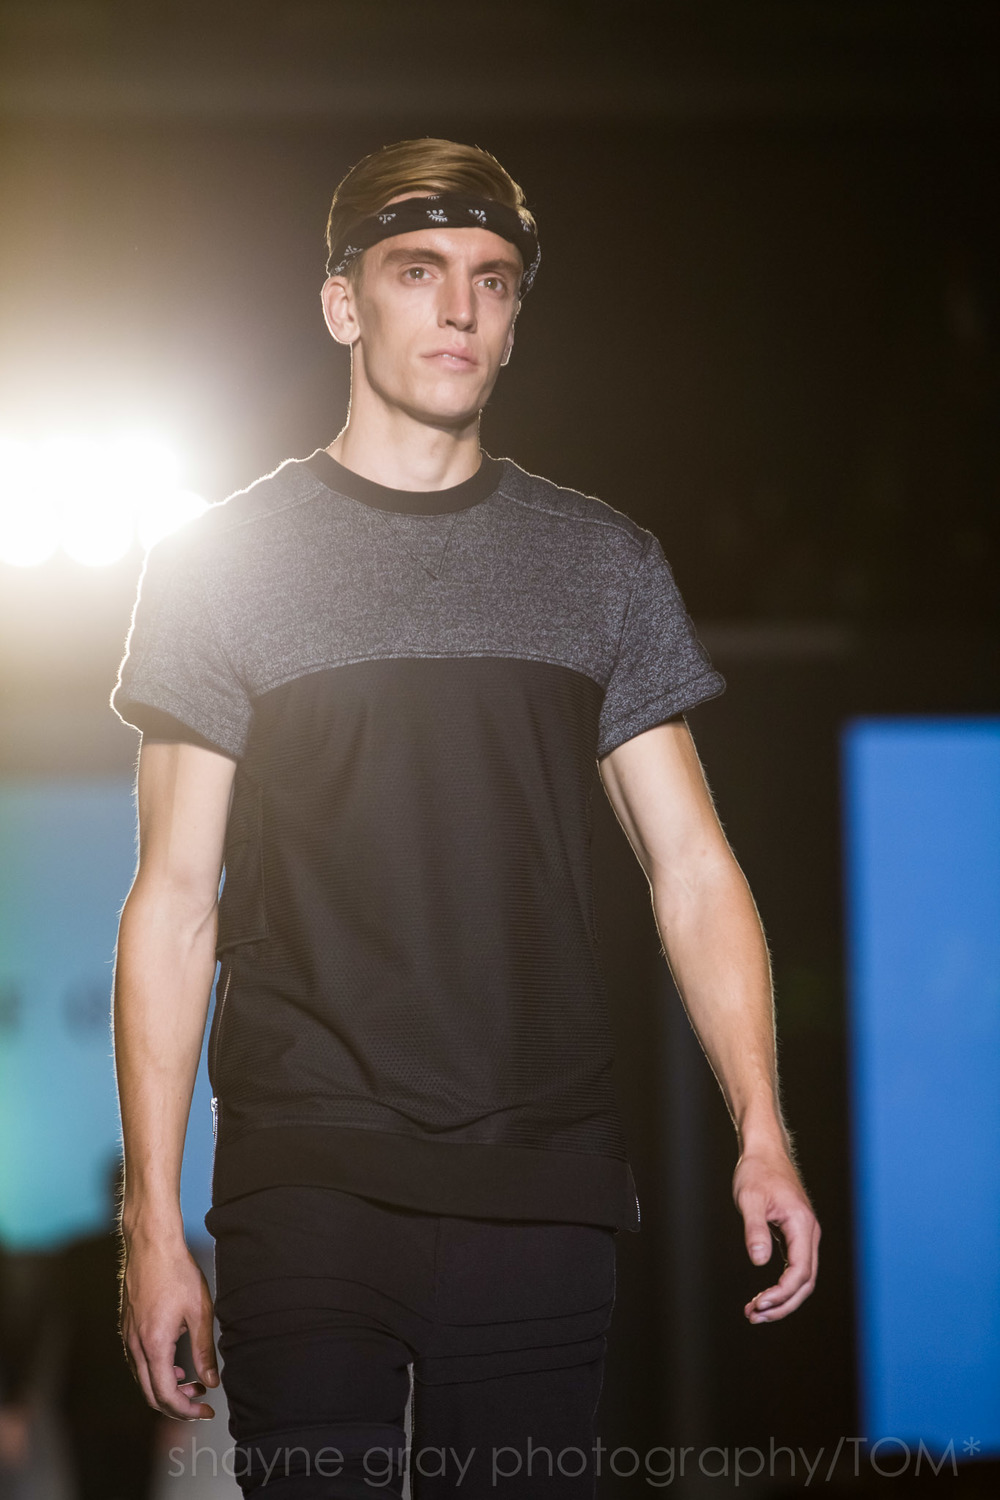 Shayne-Gray-Toronto-men's-fashion_week-TOM-sons-of-odin-8530.jpg